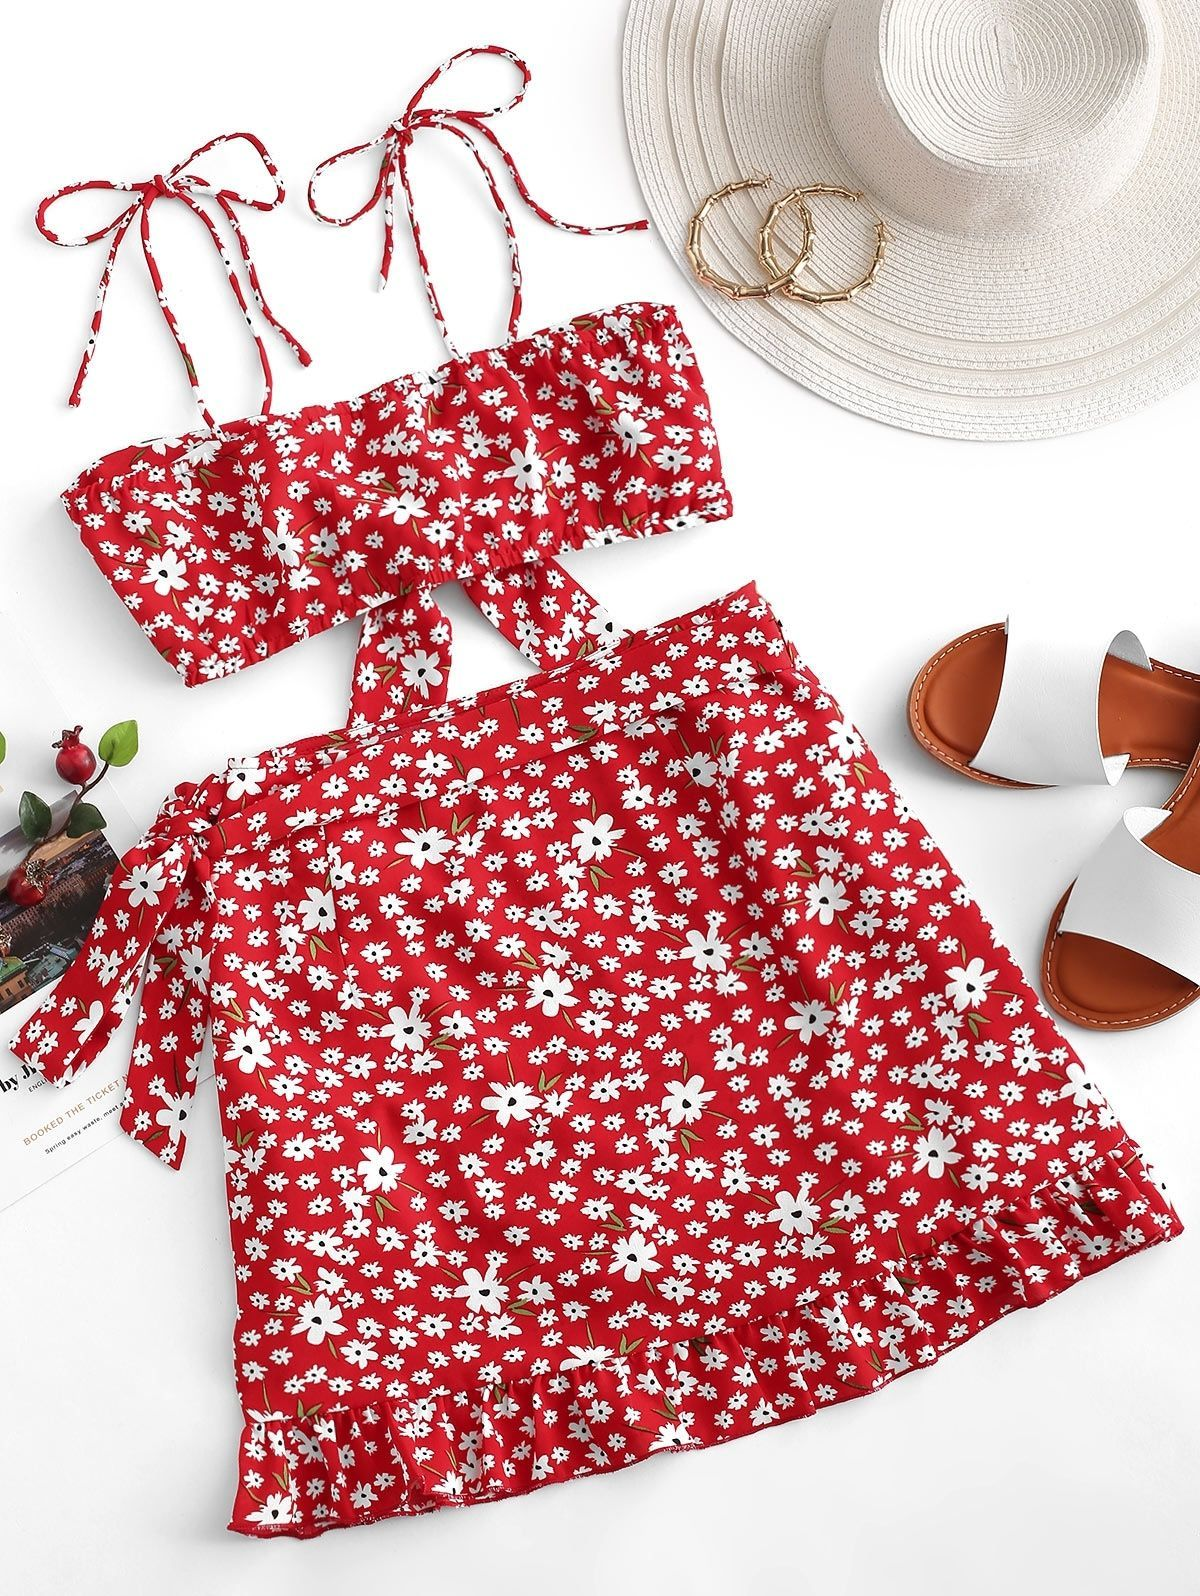 ZAFUL Two Piece Ditsy Floral Tie Front Wrap Skirt Set LAVA RED , , , , , | vintage outfits